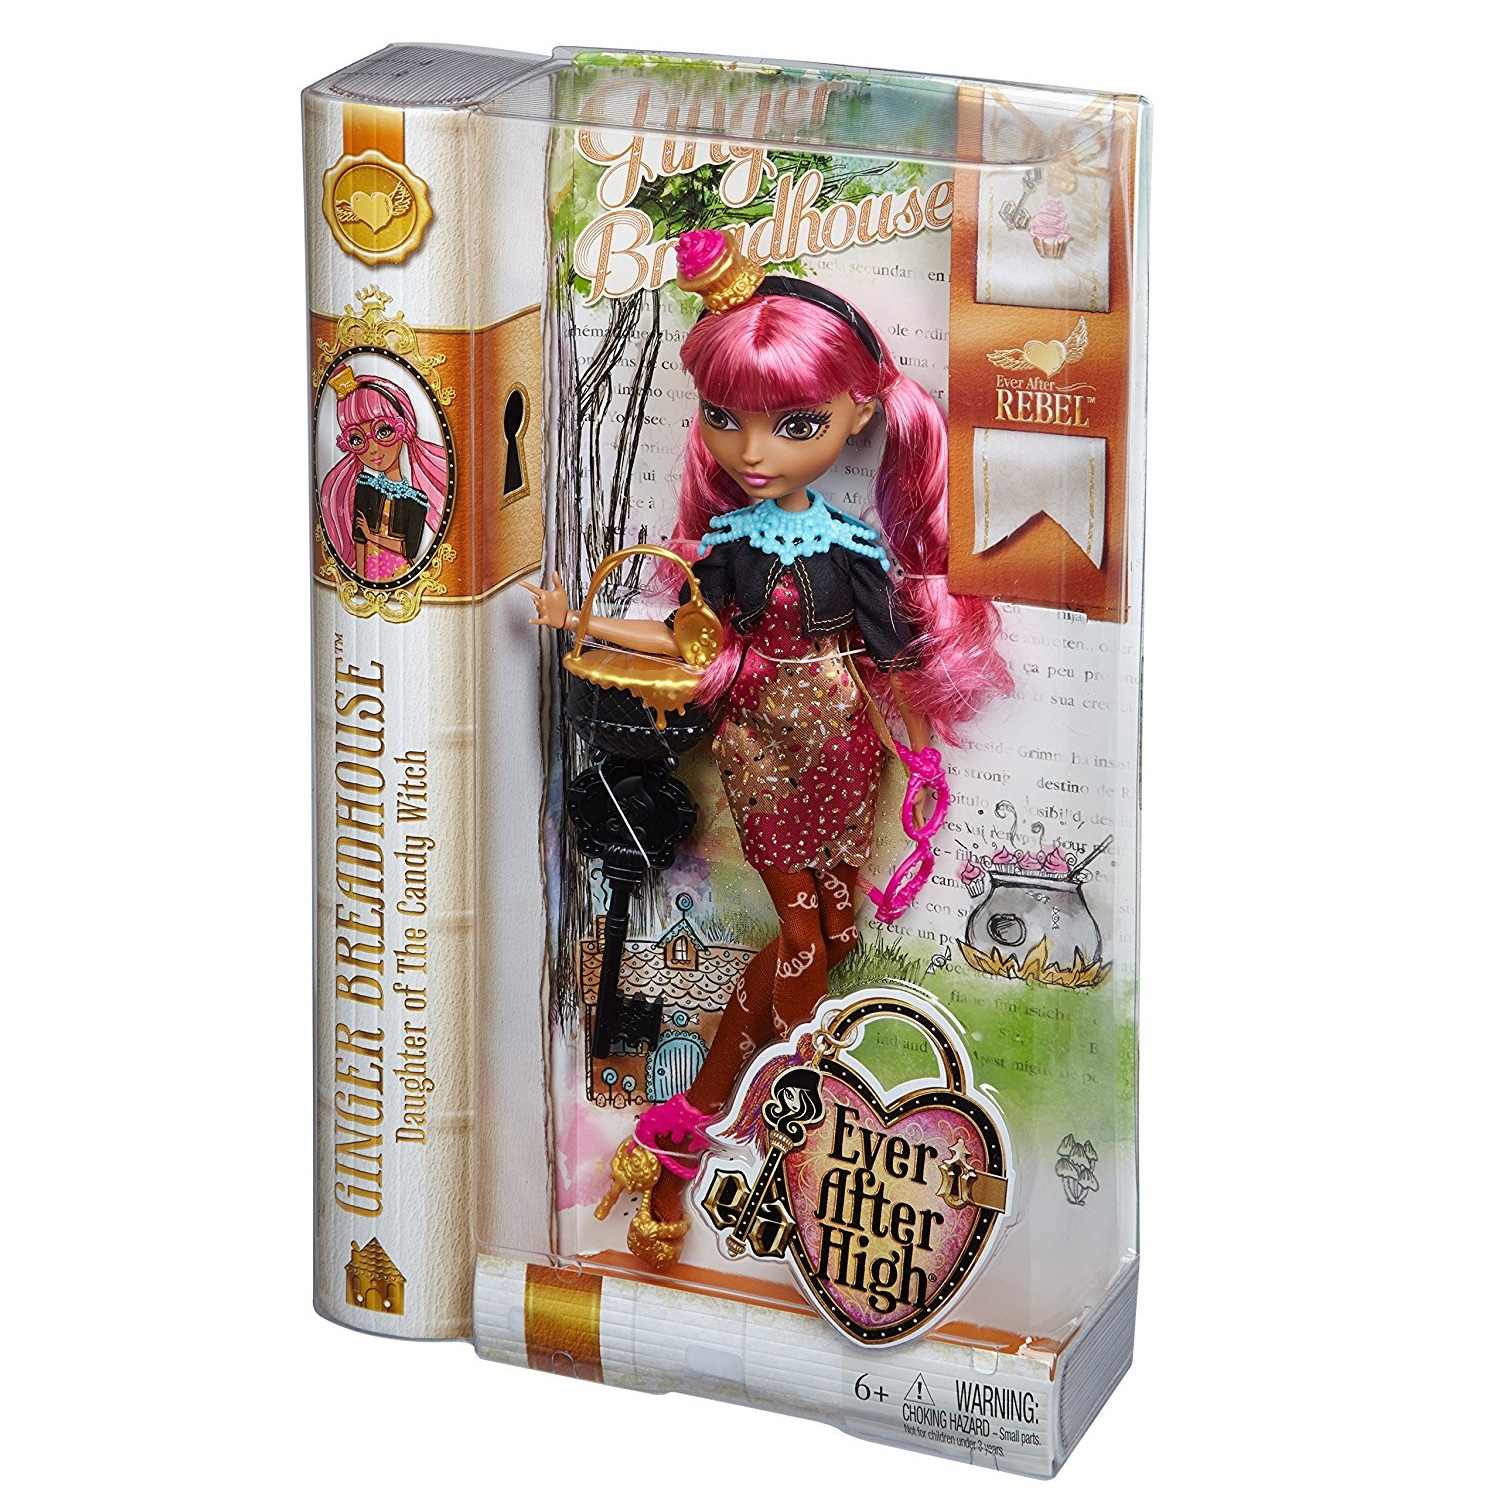 Ginger Breadhouse - búp bê con gái của phù thủy kẹo Ever After High Ginger Breadhouse Doll